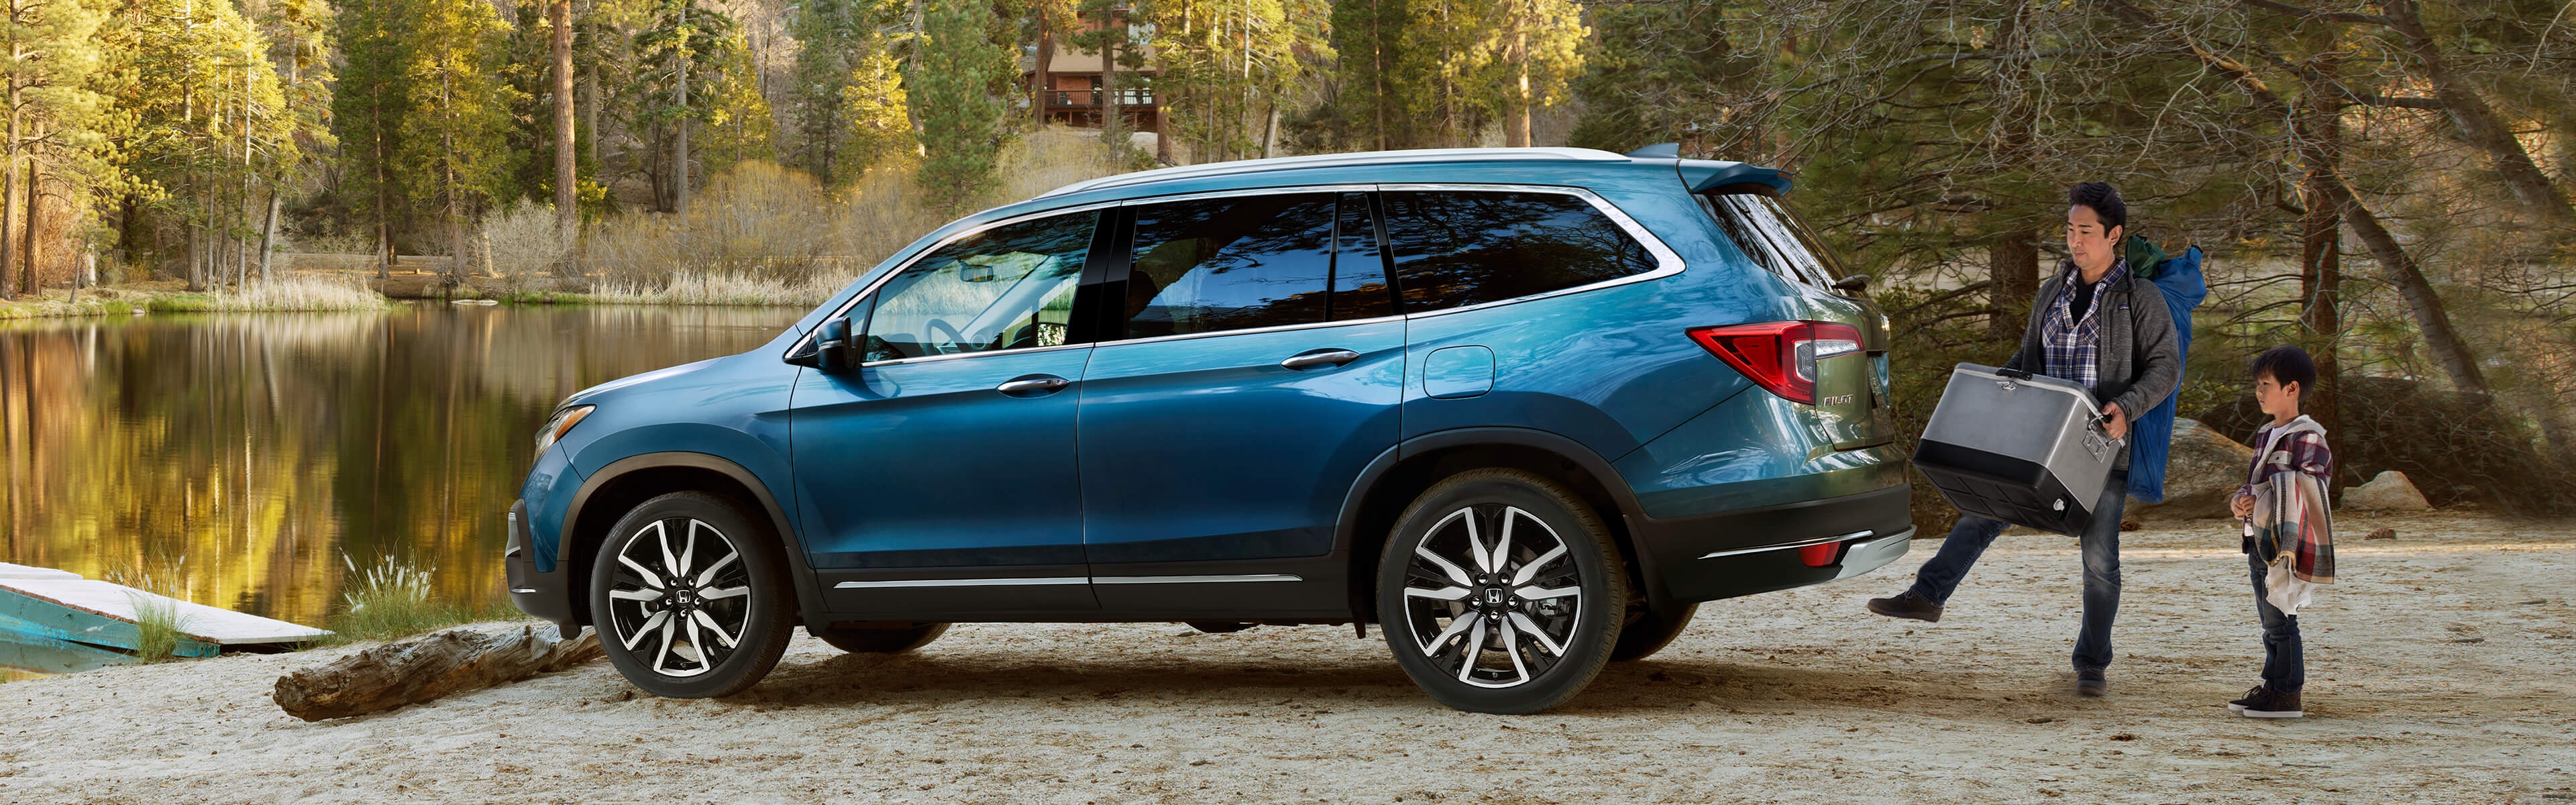 2020 Honda Pilot | Maple Honda